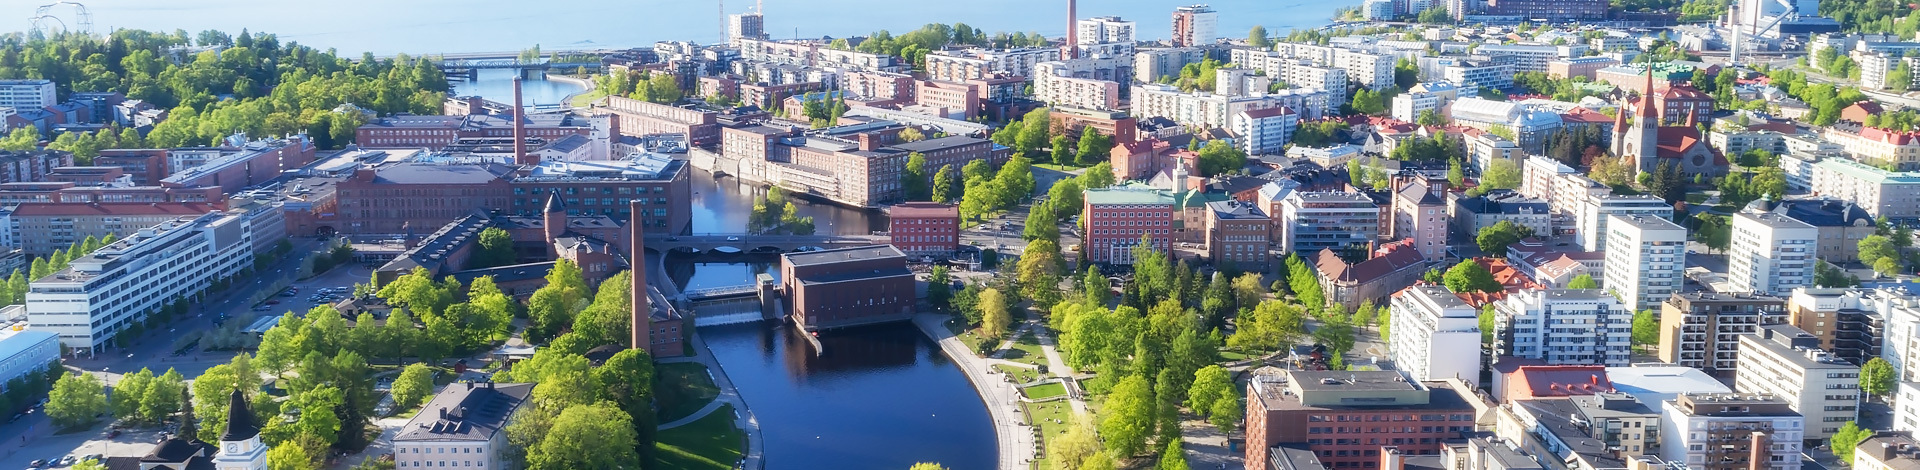 View of Tampere